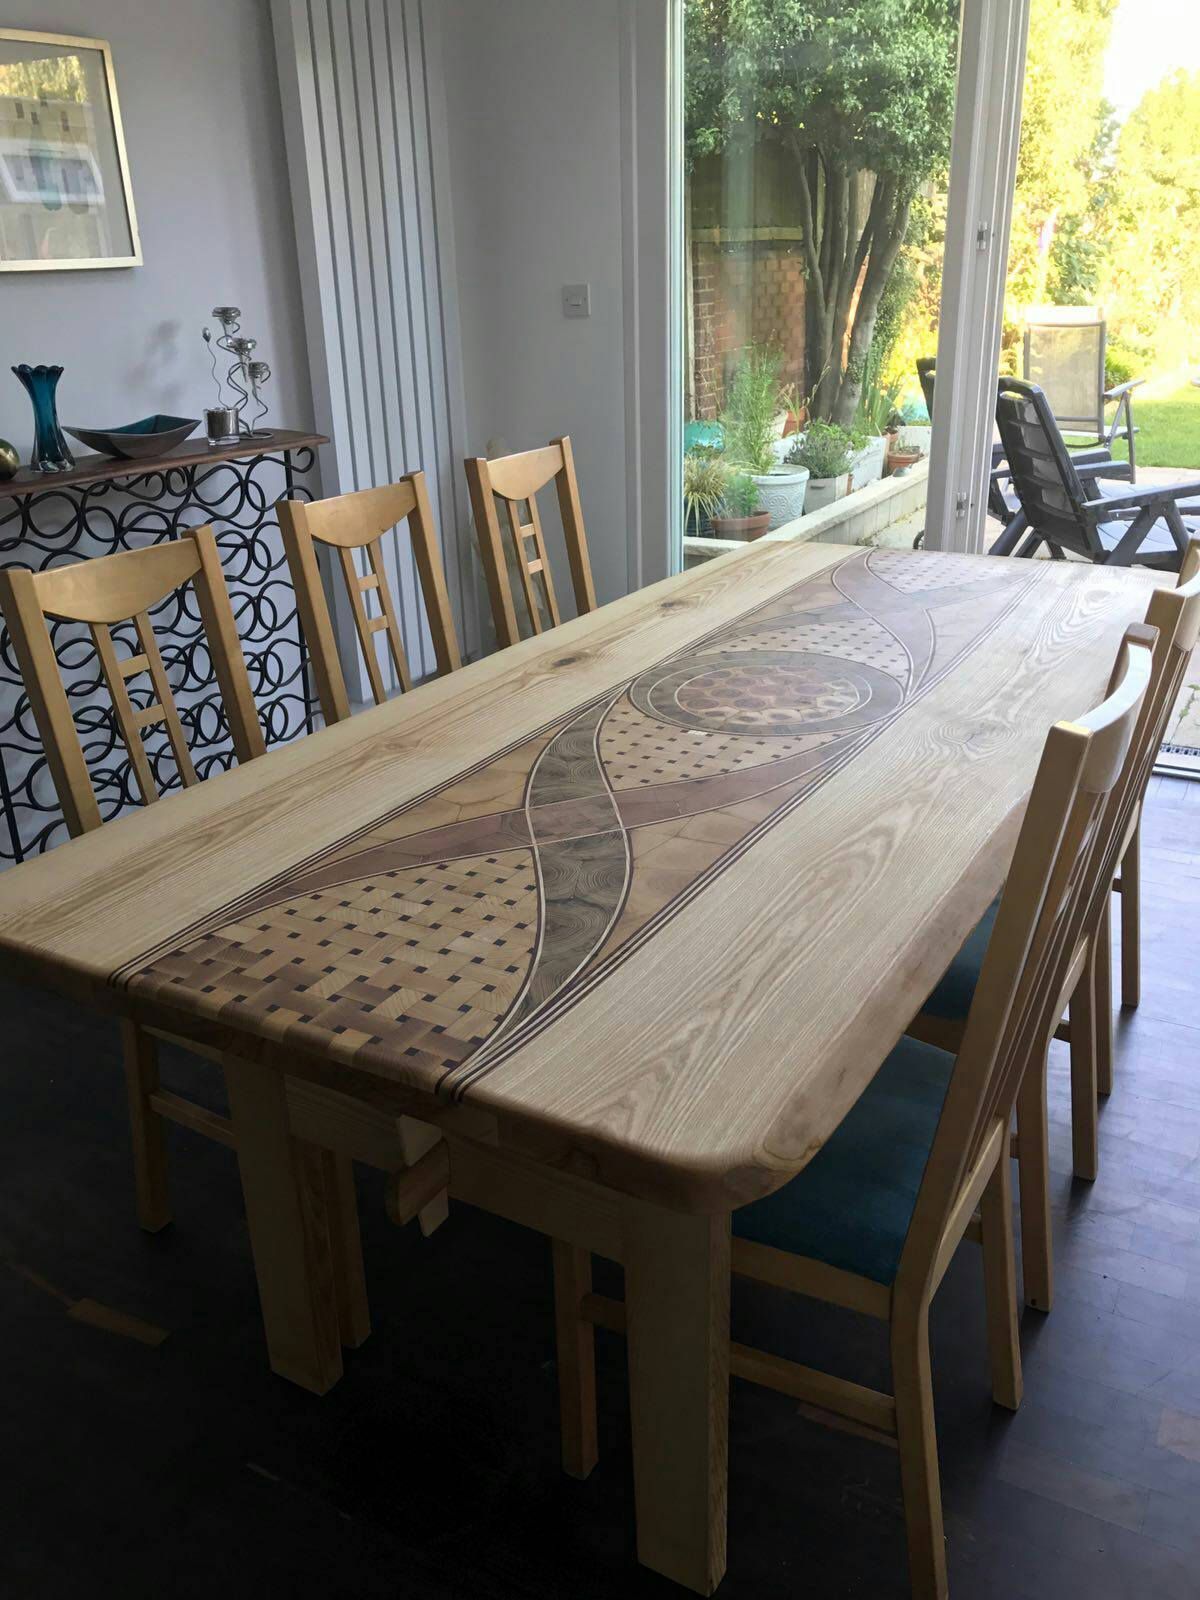 New Unique Live Edge Dining Table  Rustic Tables  Pinterest Entrancing Handmade Dining Room Tables Review